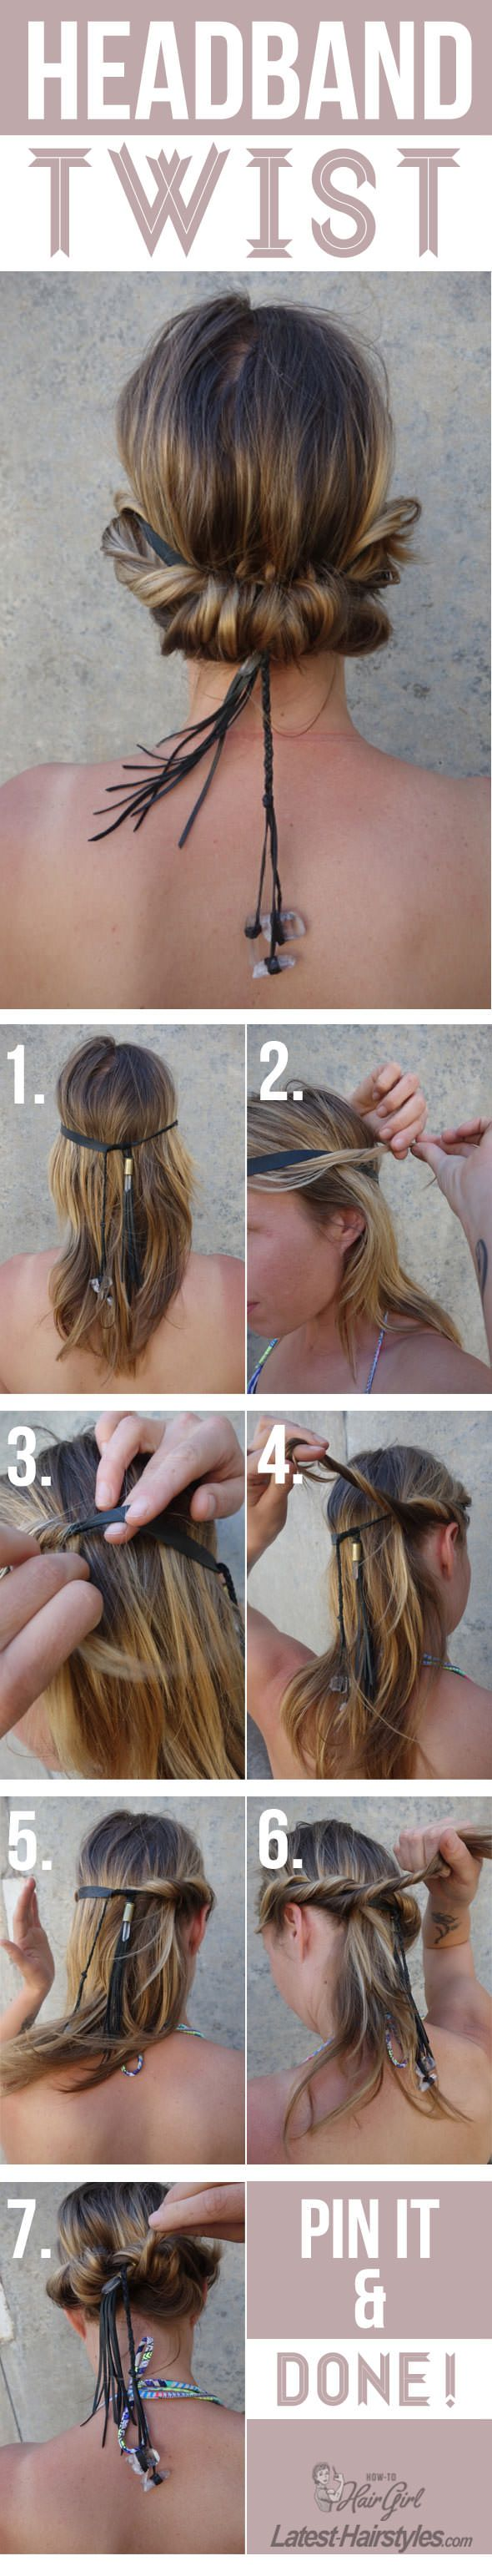 The PERFECT hair look for summer! Full tutorial with tips here: http://www.latest-hairstyles.com/tutorials/headband-twist.html